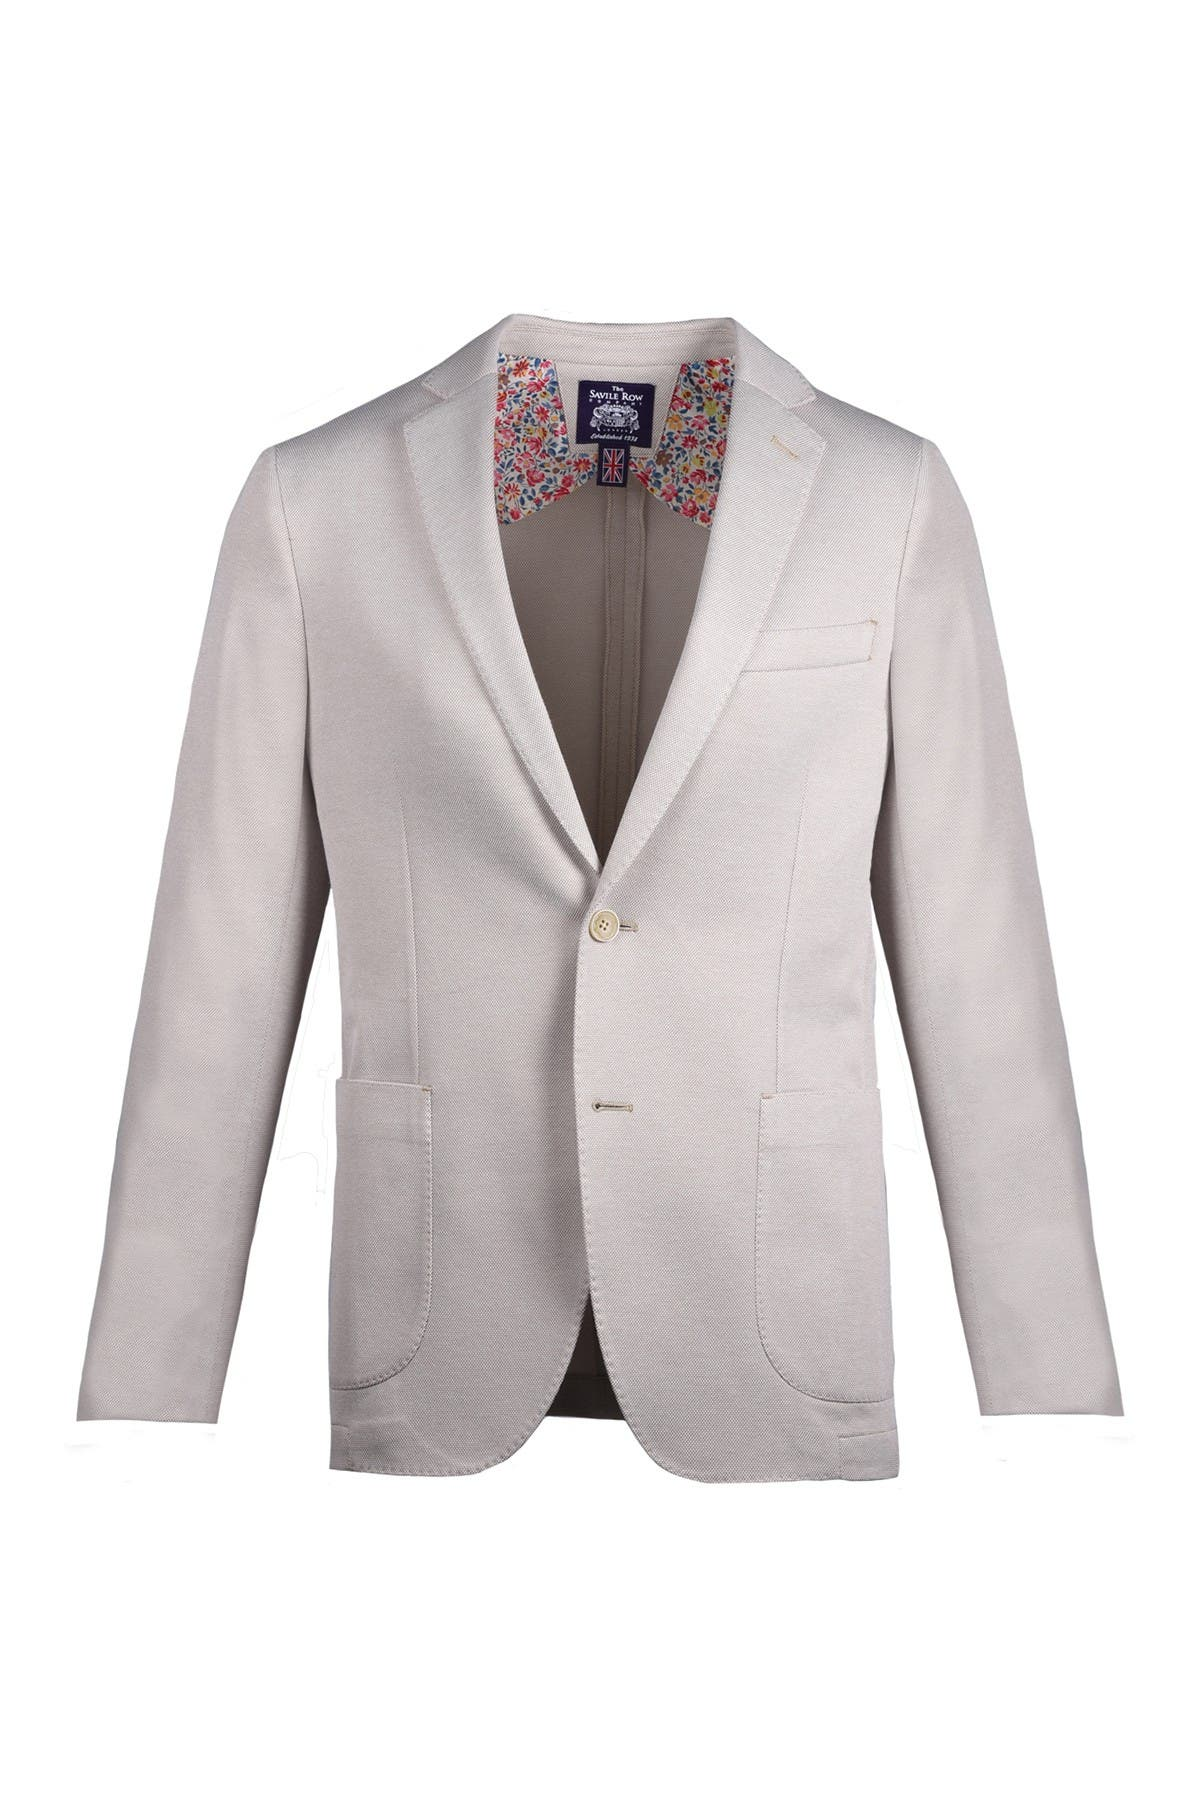 Image of SAVILE ROW CO Slim Knit Blazer